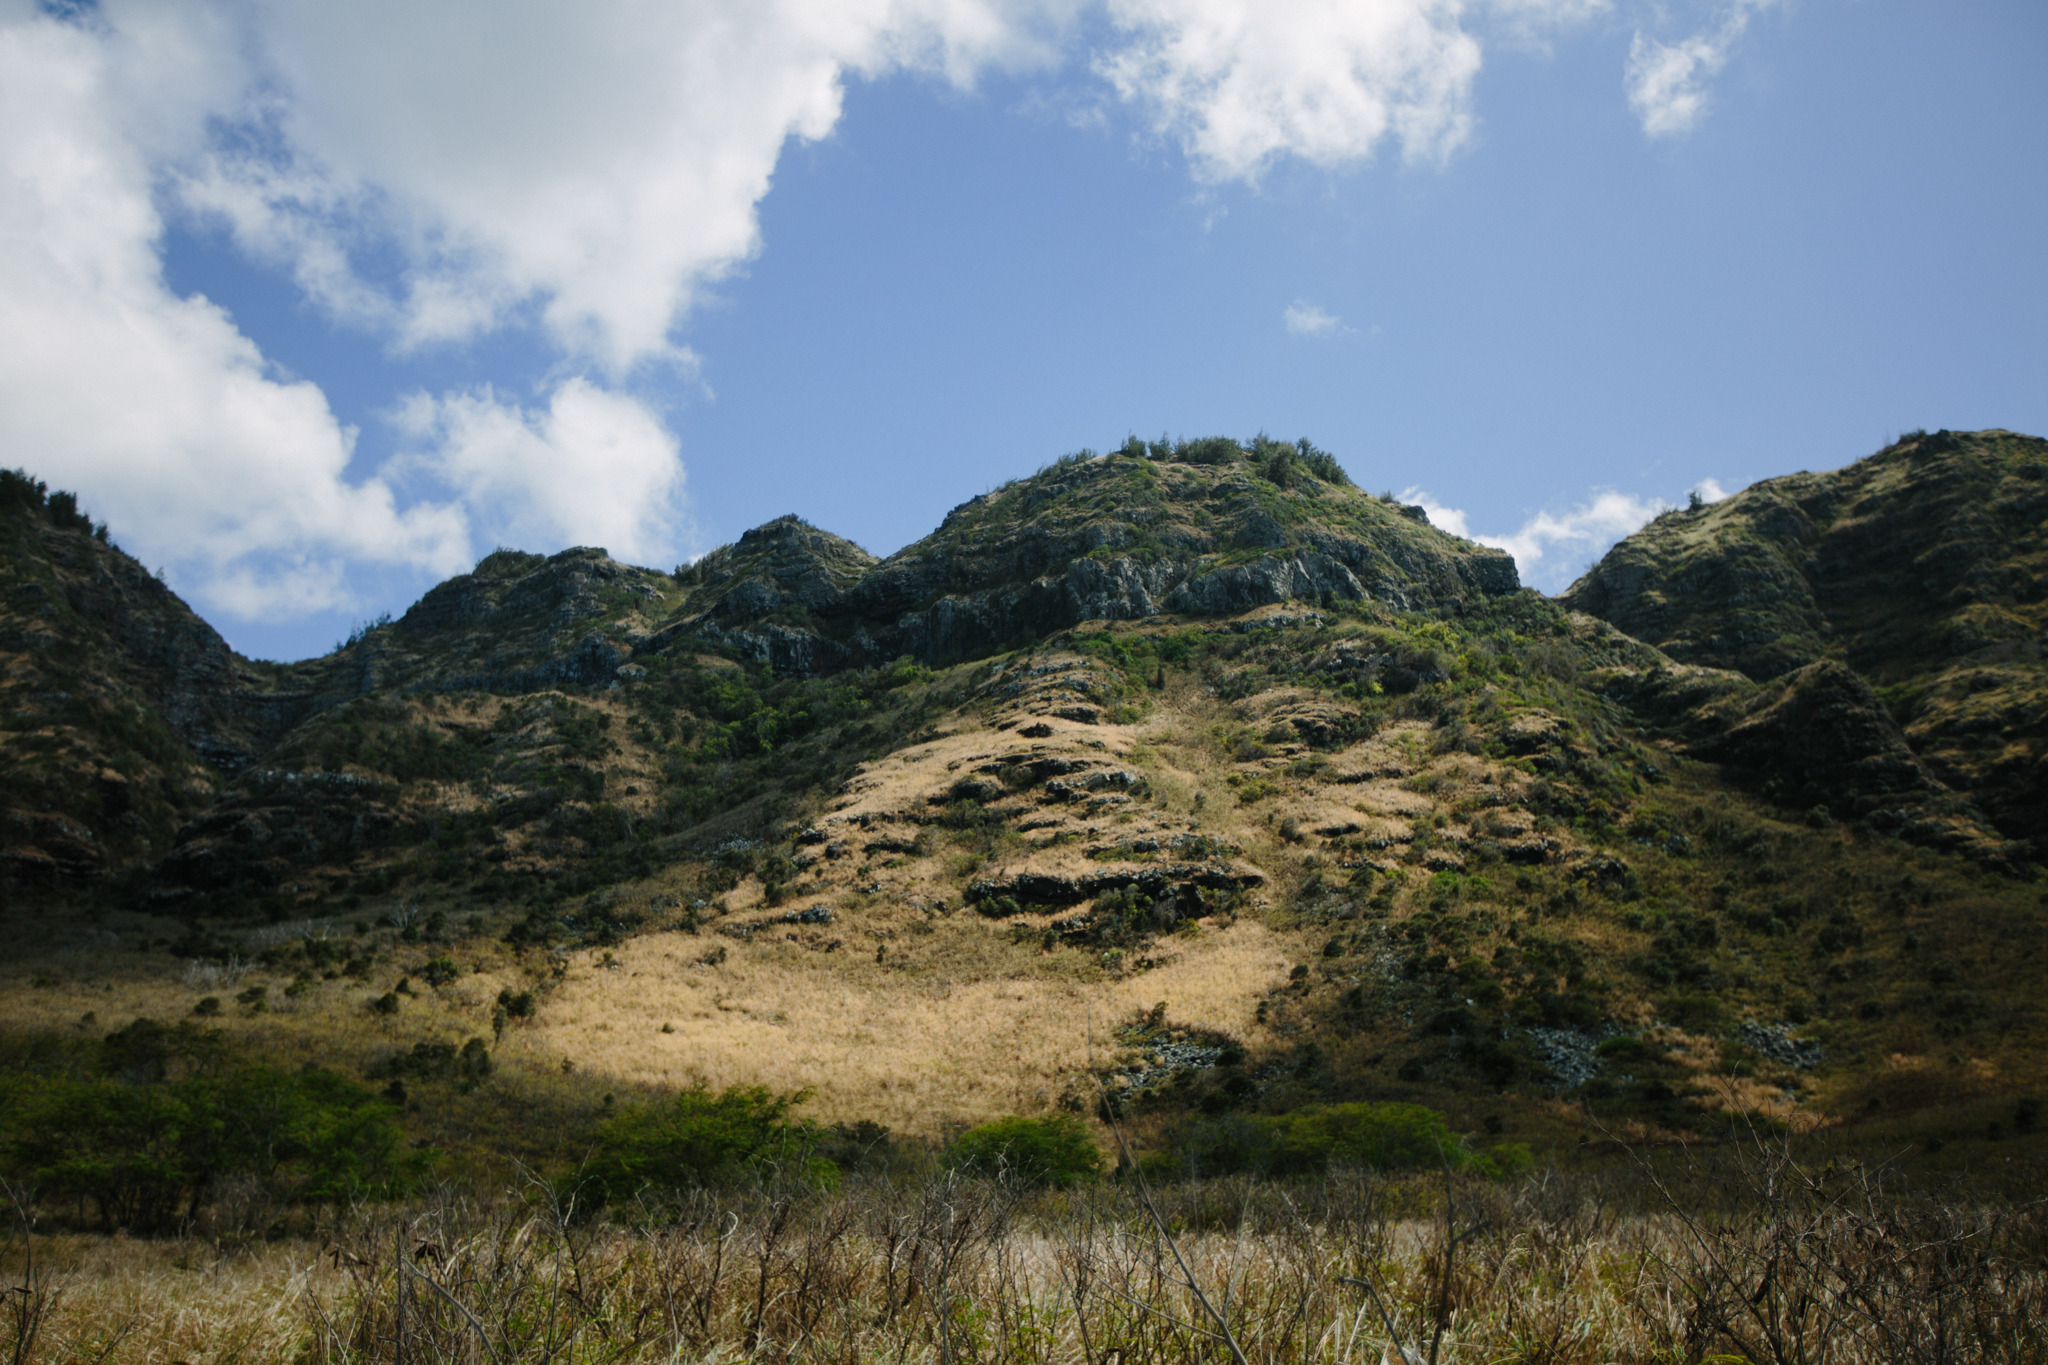 Climbing at Mokule'ia means hiking to the top of a mountain first!